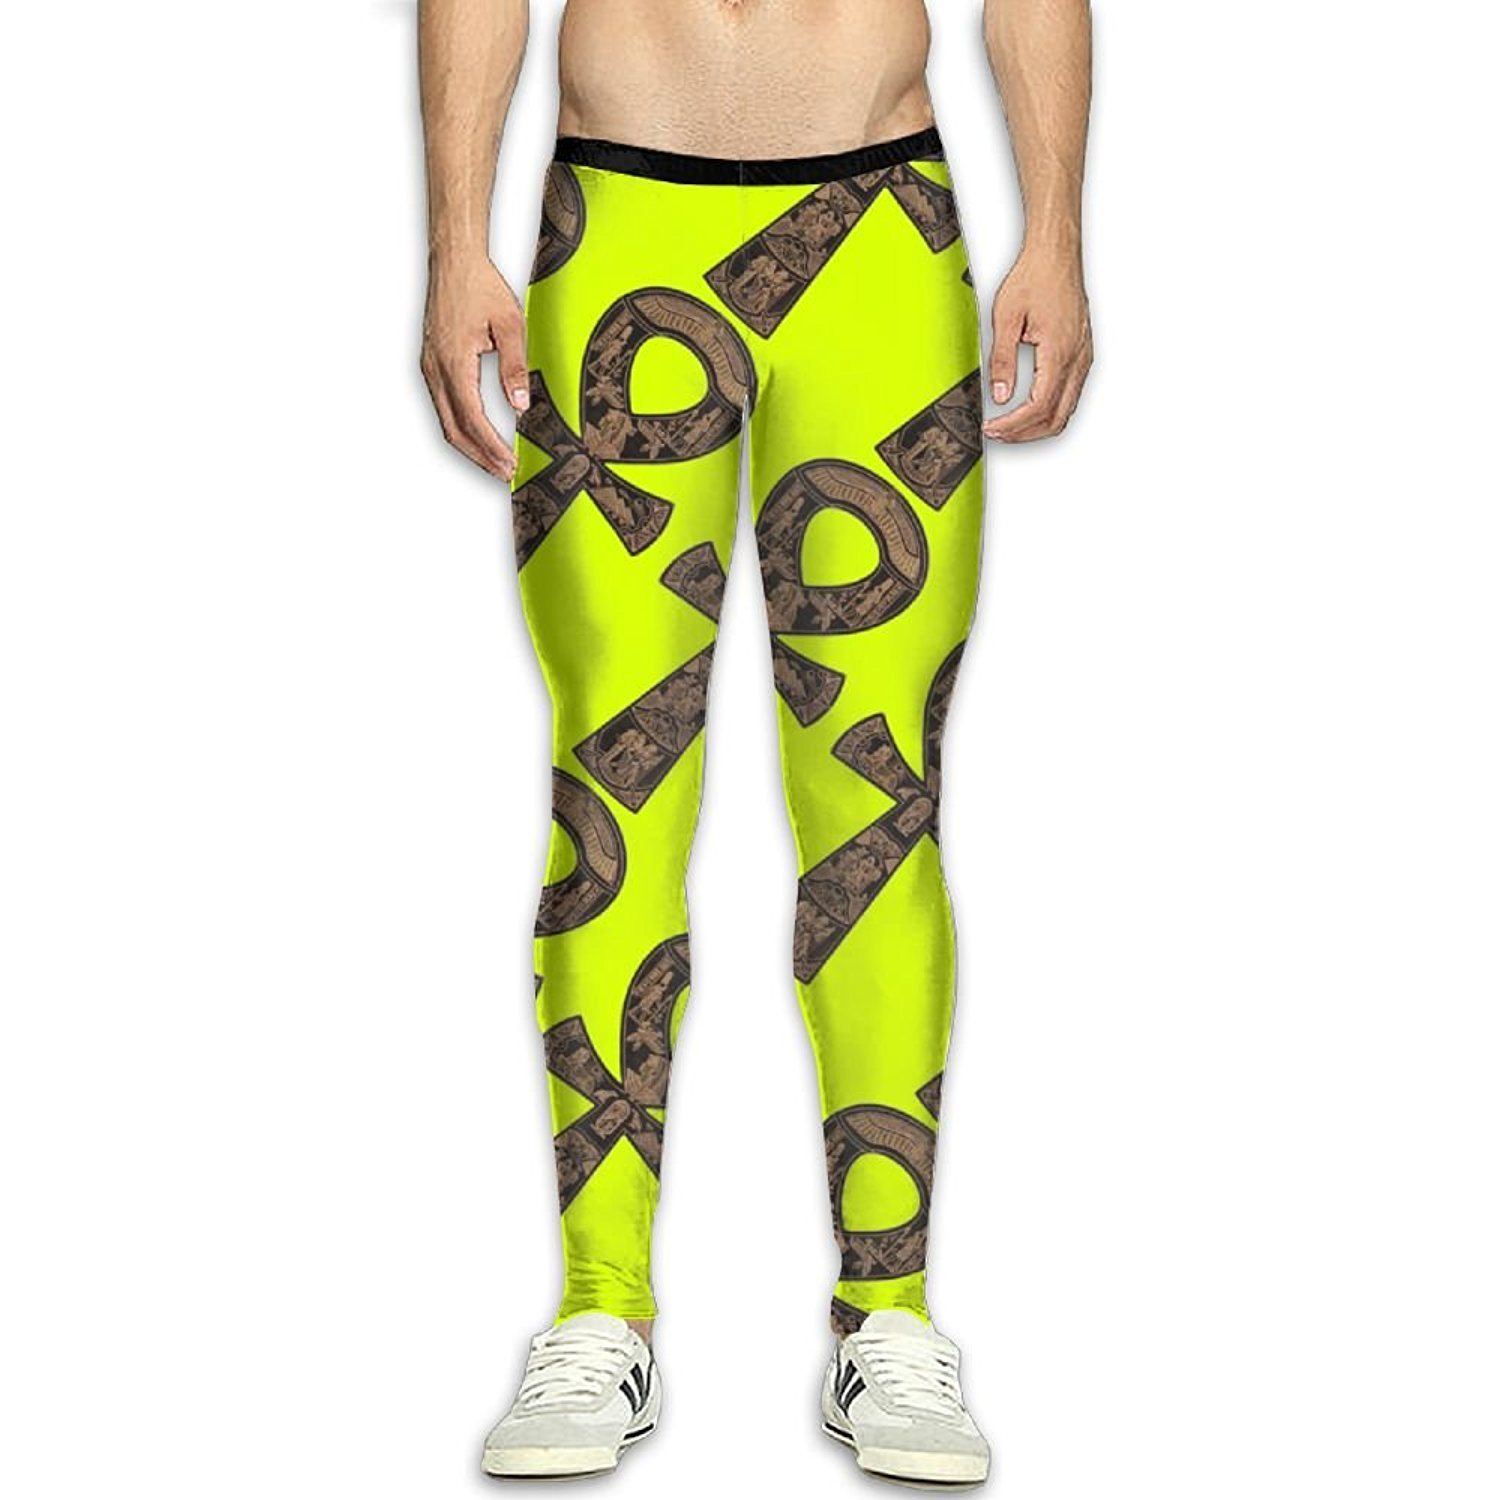 28edf7c4fce6c Get Quotations · Virgo Ancient Egyptian Ank Stretchy Compression  Pants/Running Tights Leggings Ladies Winter